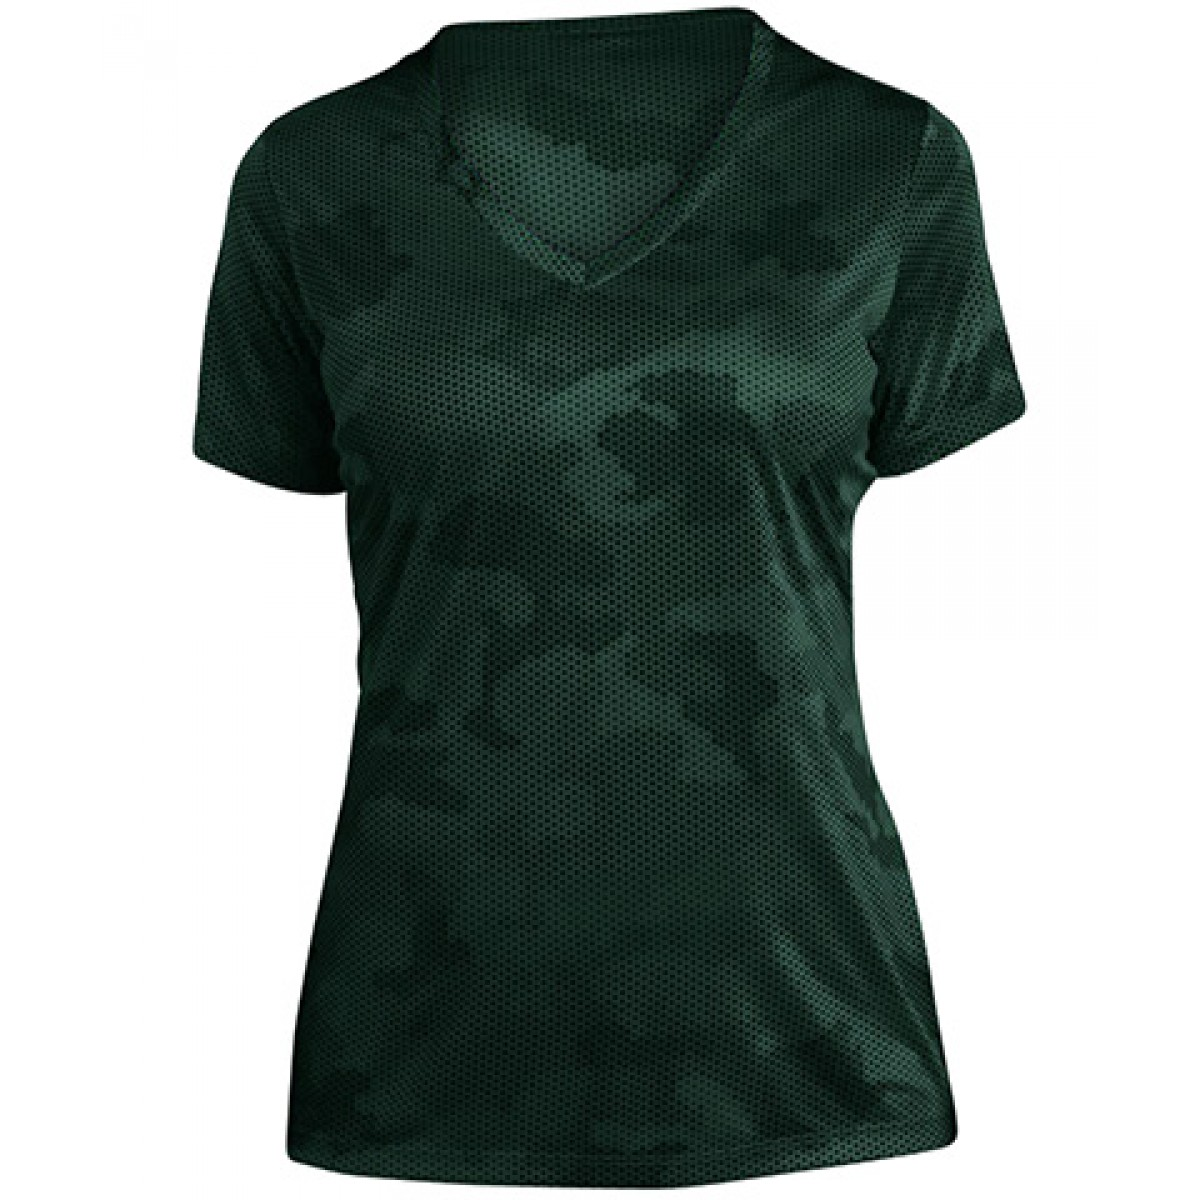 Ladies CamoHex V-Neck Tee-Green-XS